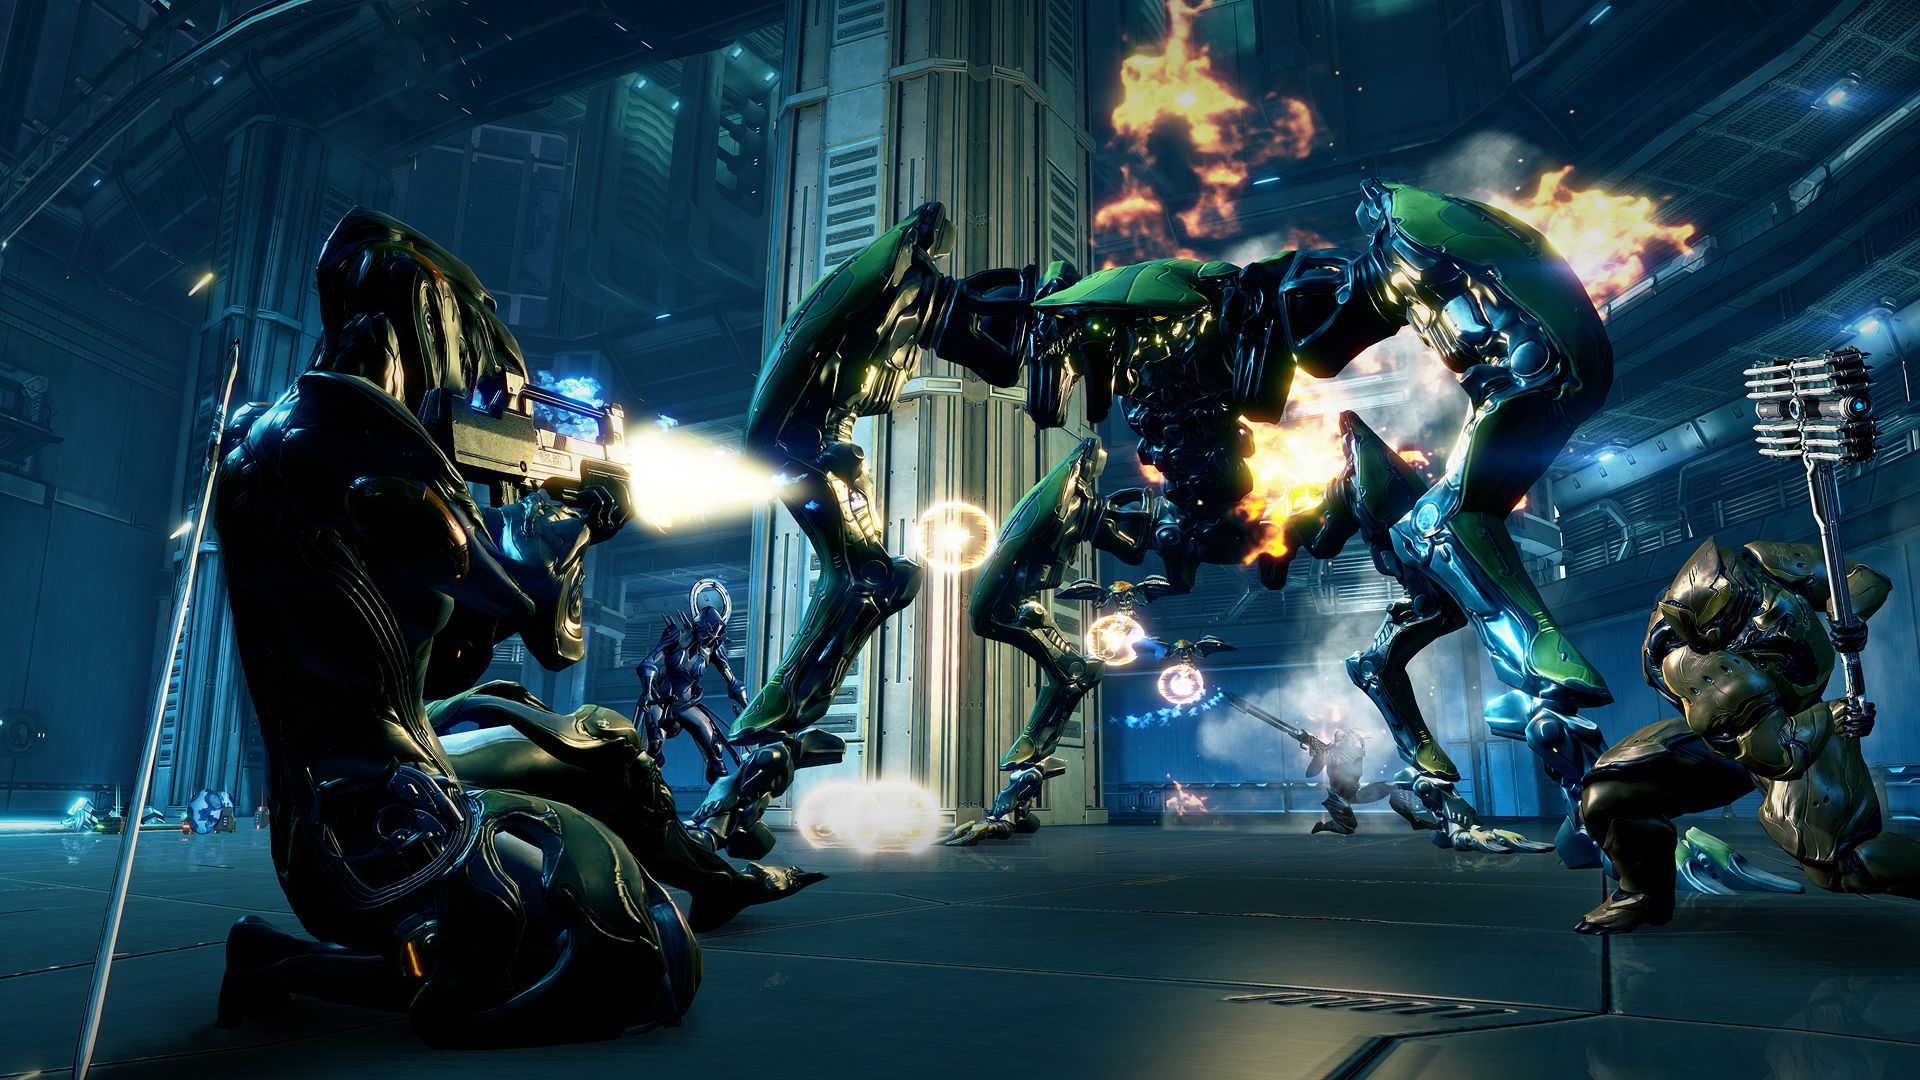 How to get into Warframe, gaming's most complex co-op shooter